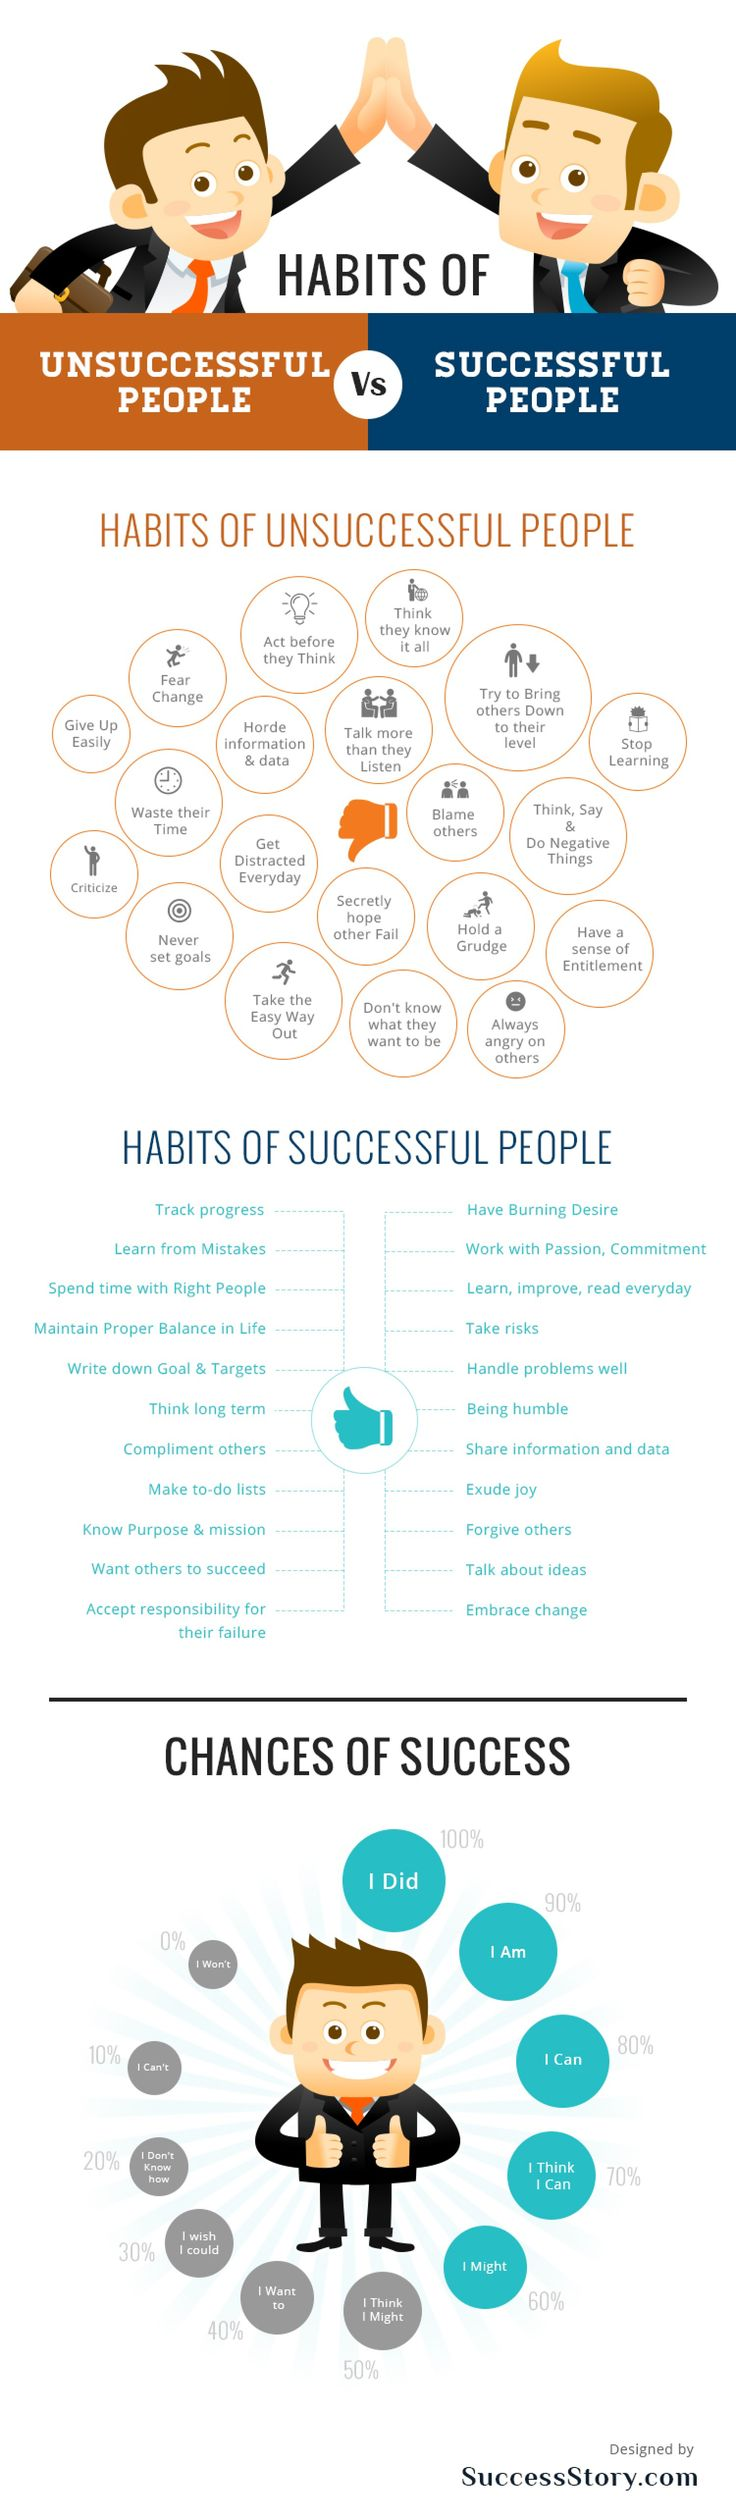 """We are what we repeatedly do. Excellence, then, is not an act, but a habit."" Aristotle Show me your daily habits and I can describe your future. Discover the habits of successful people as opposed..."